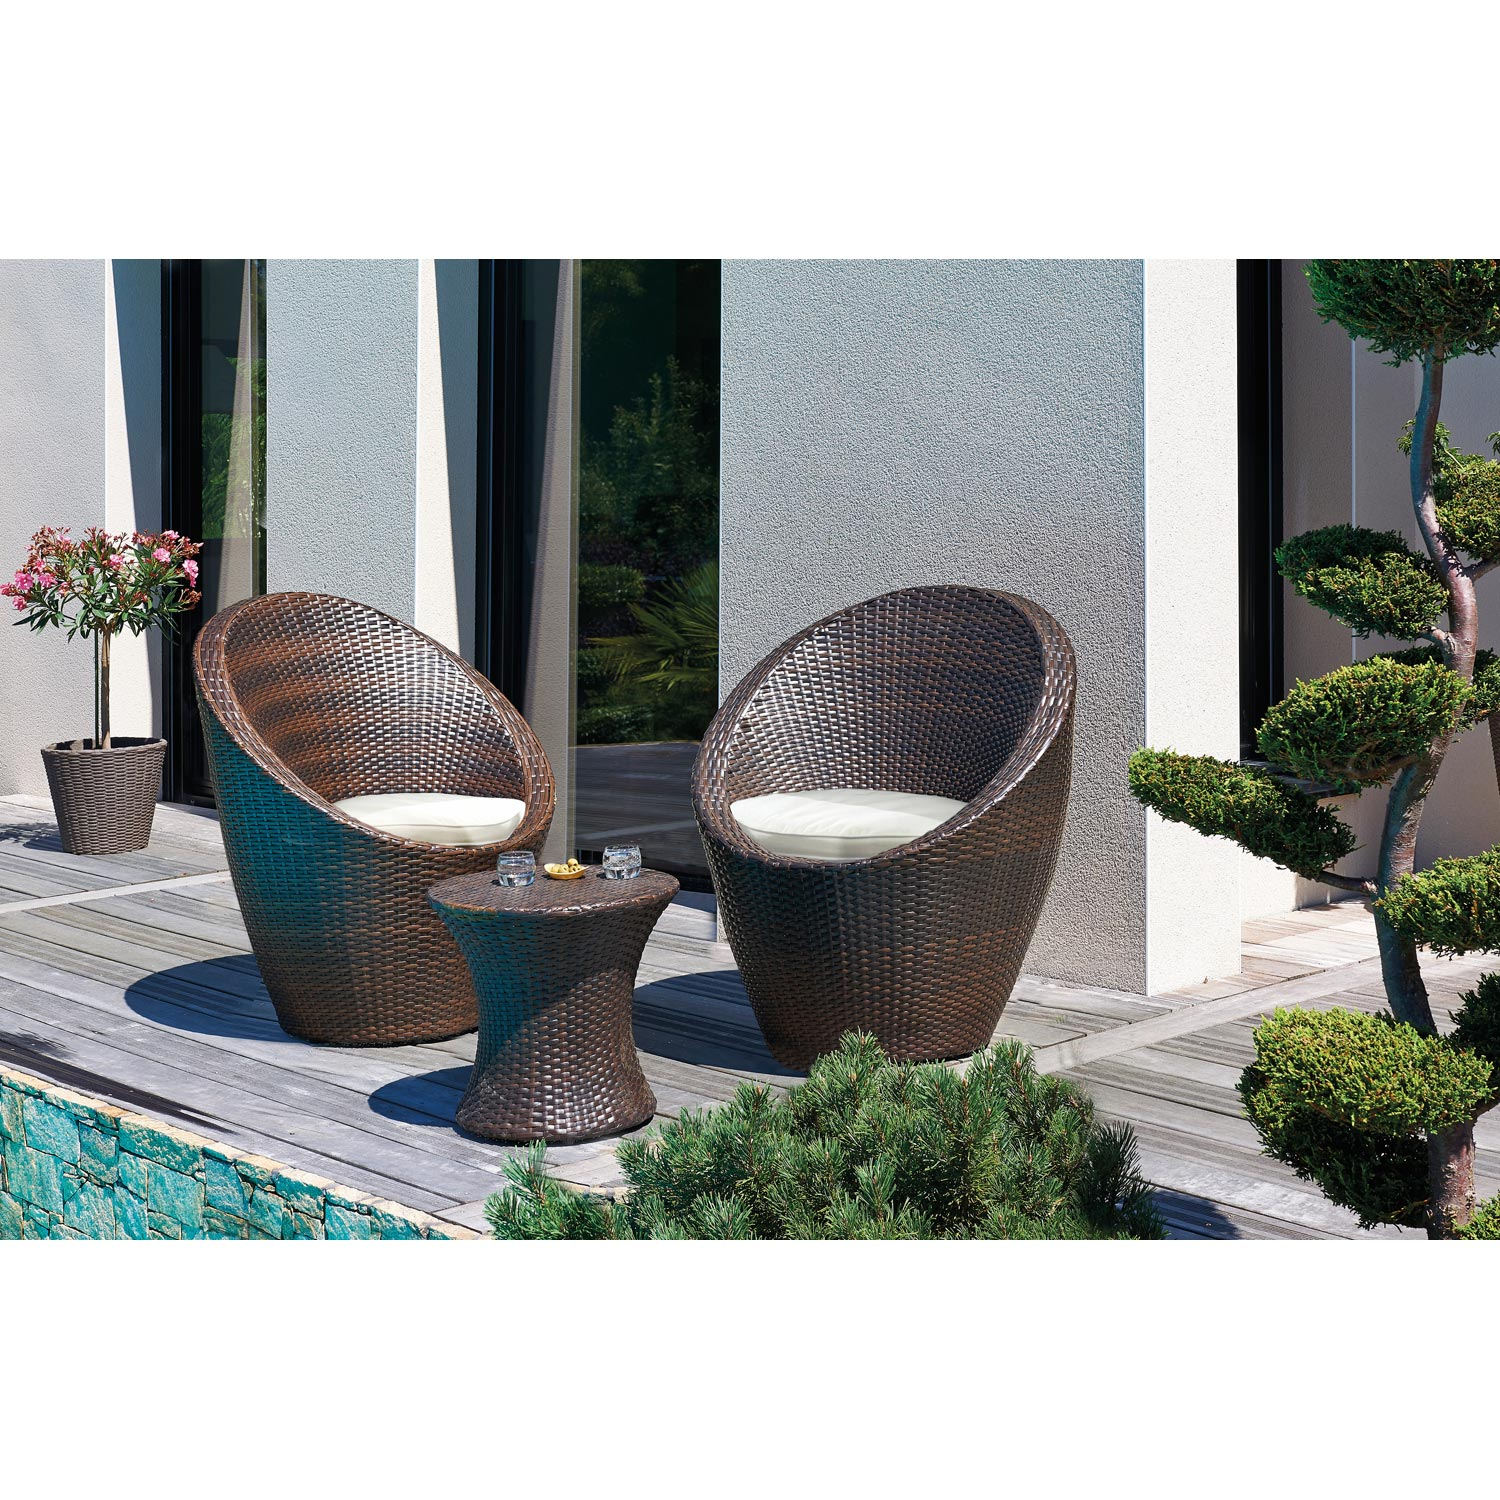 Emejing Salon De Jardin Bas Chocolat Contemporary - Home Design ...